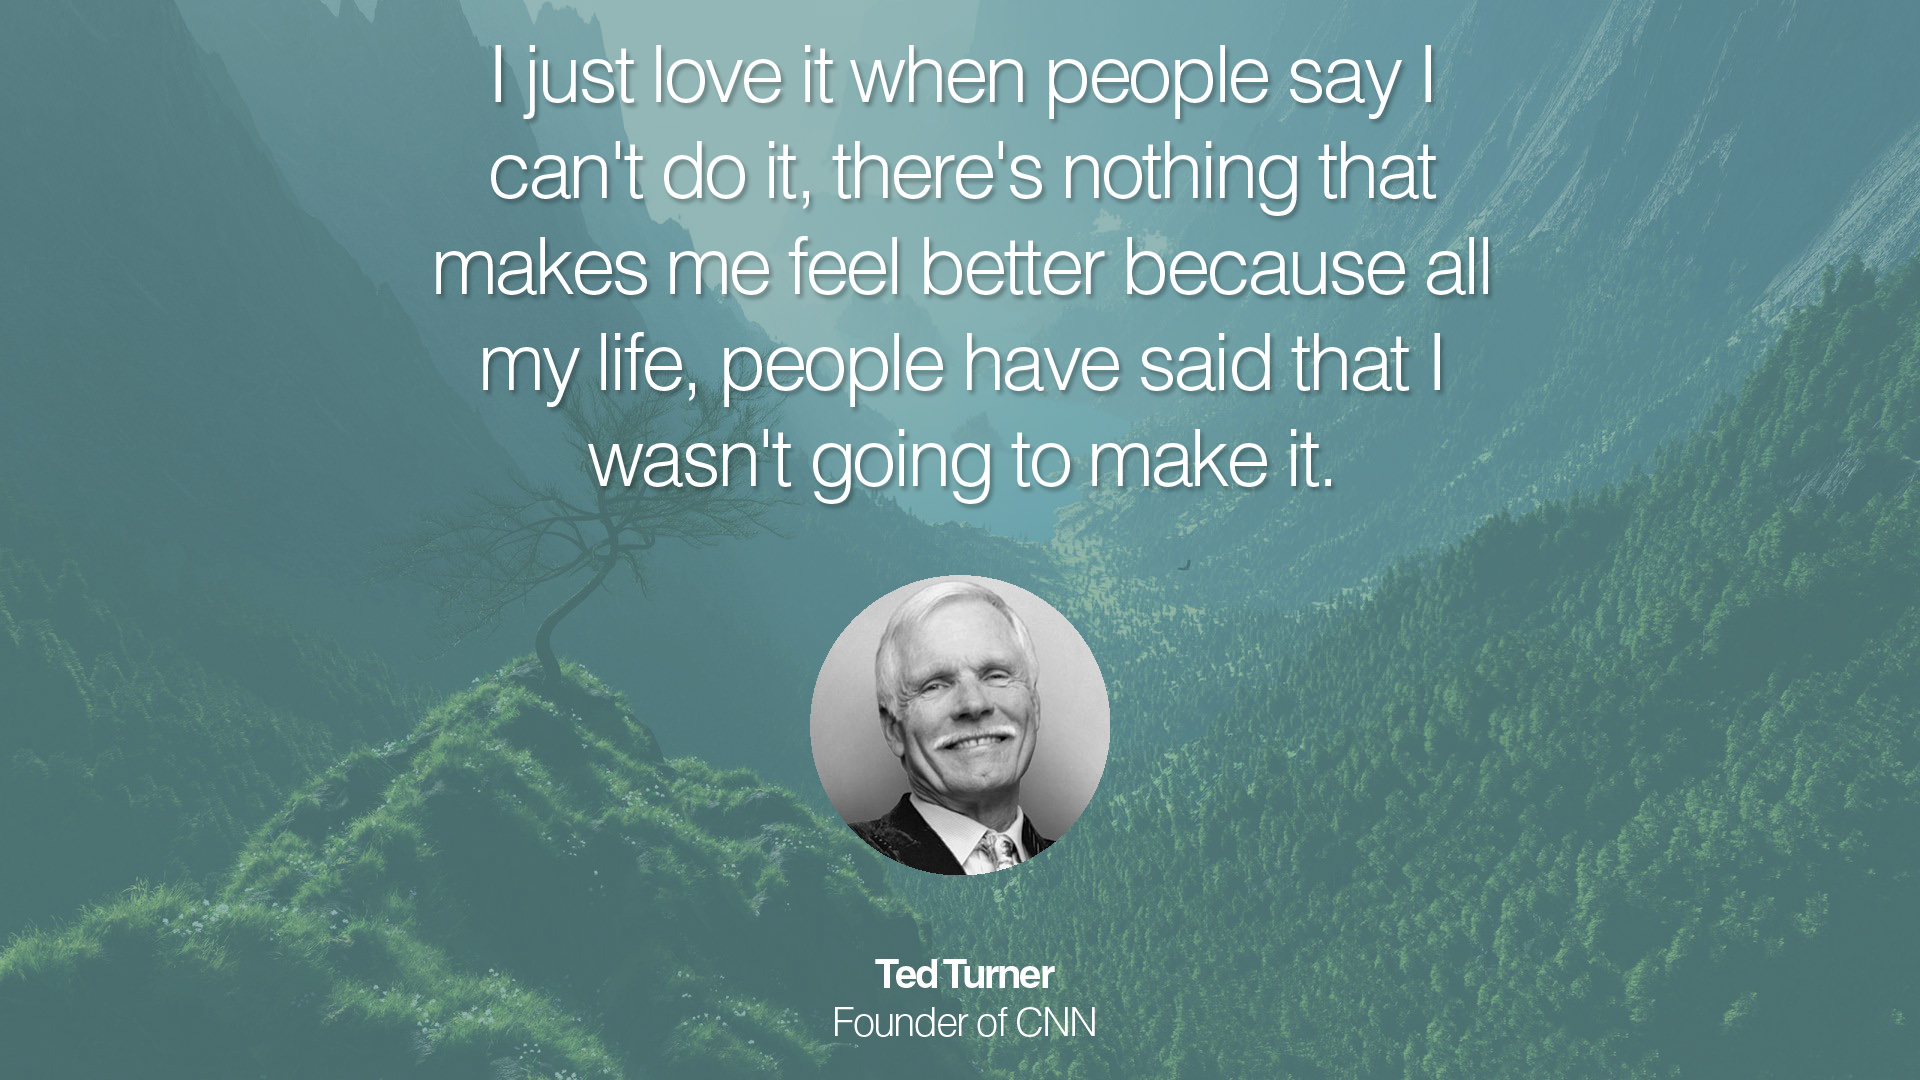 Famous Inspirational Quotes Life 21 Inspirational Entrepreneur Quotesfamous Billionaires And